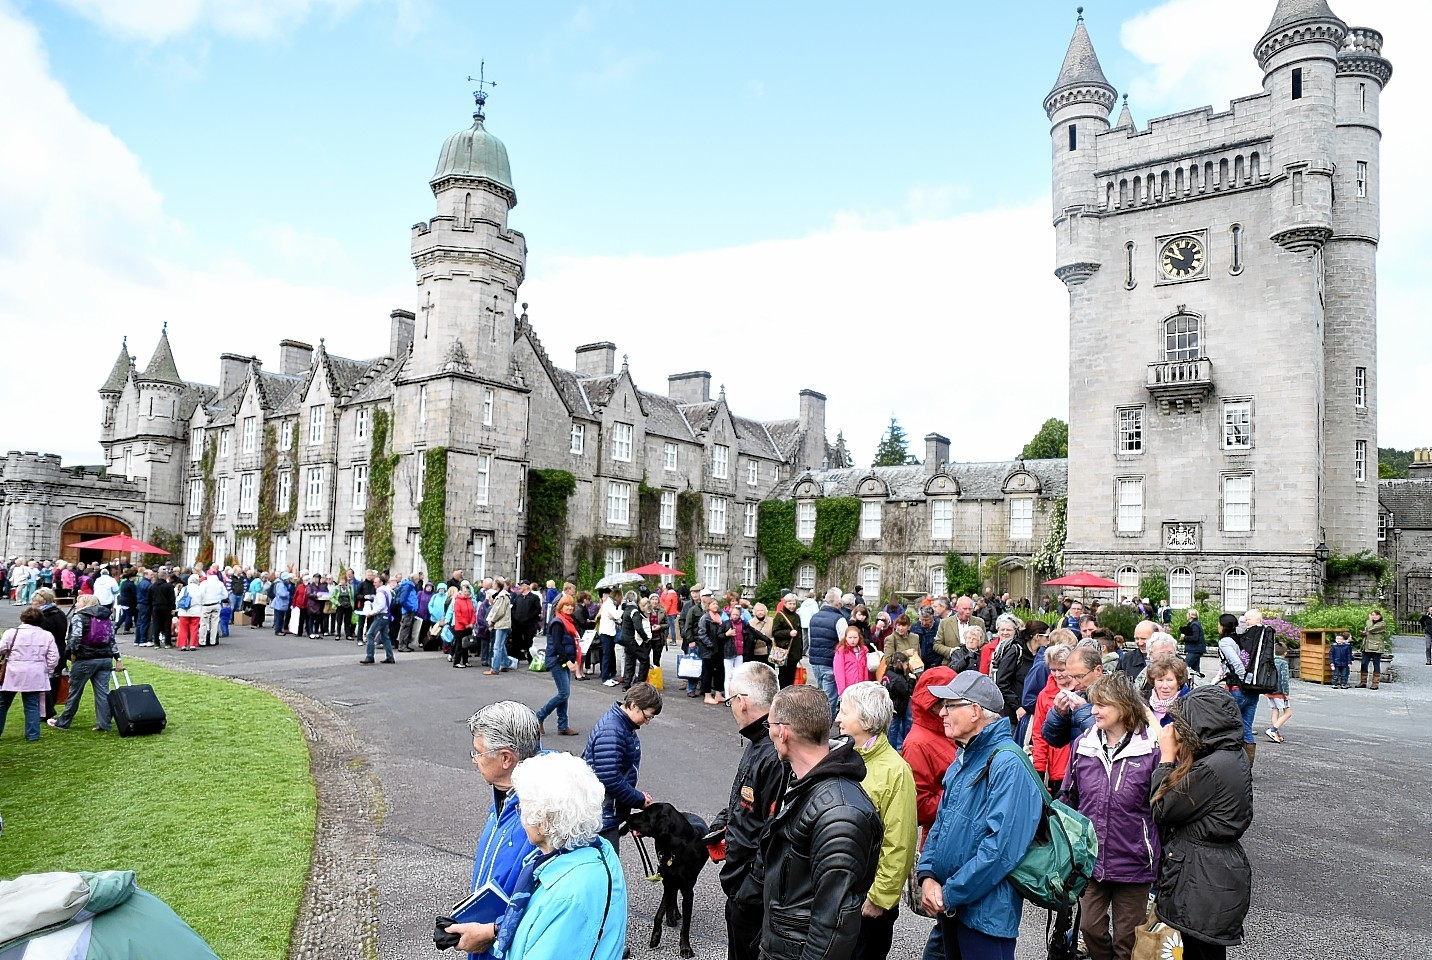 The crowds arrive as the BBC film the Antiques Roadshow episode at the Queen's Scottish residence, Balmoral Castle. Picture by Kami Thomson